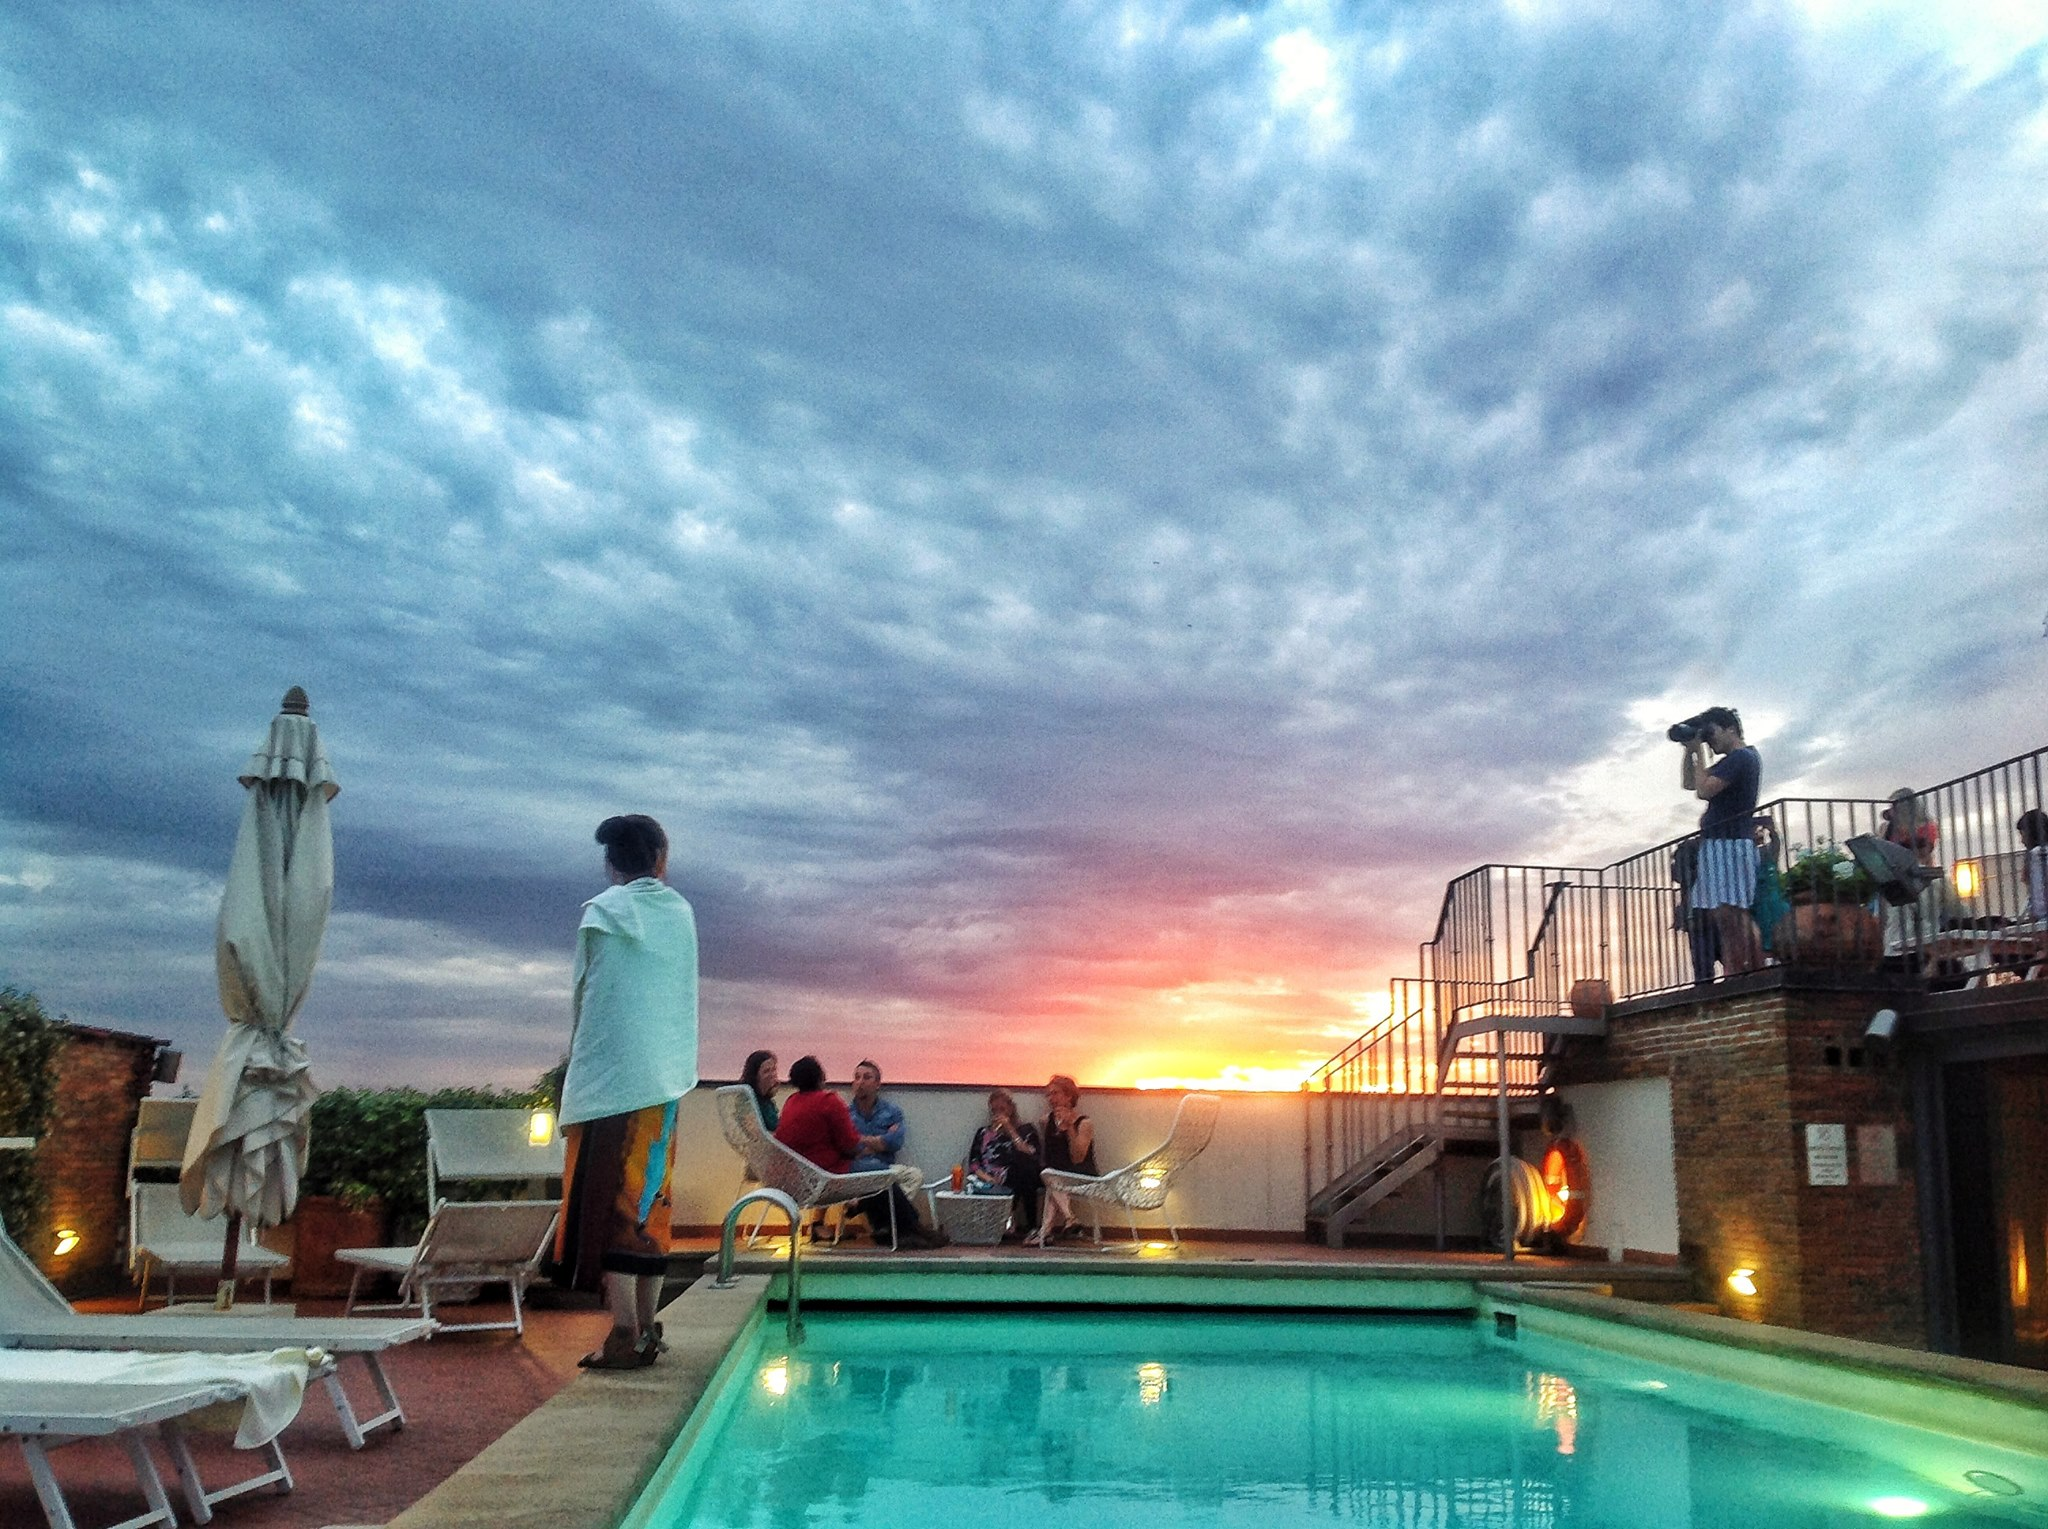 Rooms: Aperitivo At Hotel Minerva – Cocktails & Sunsets